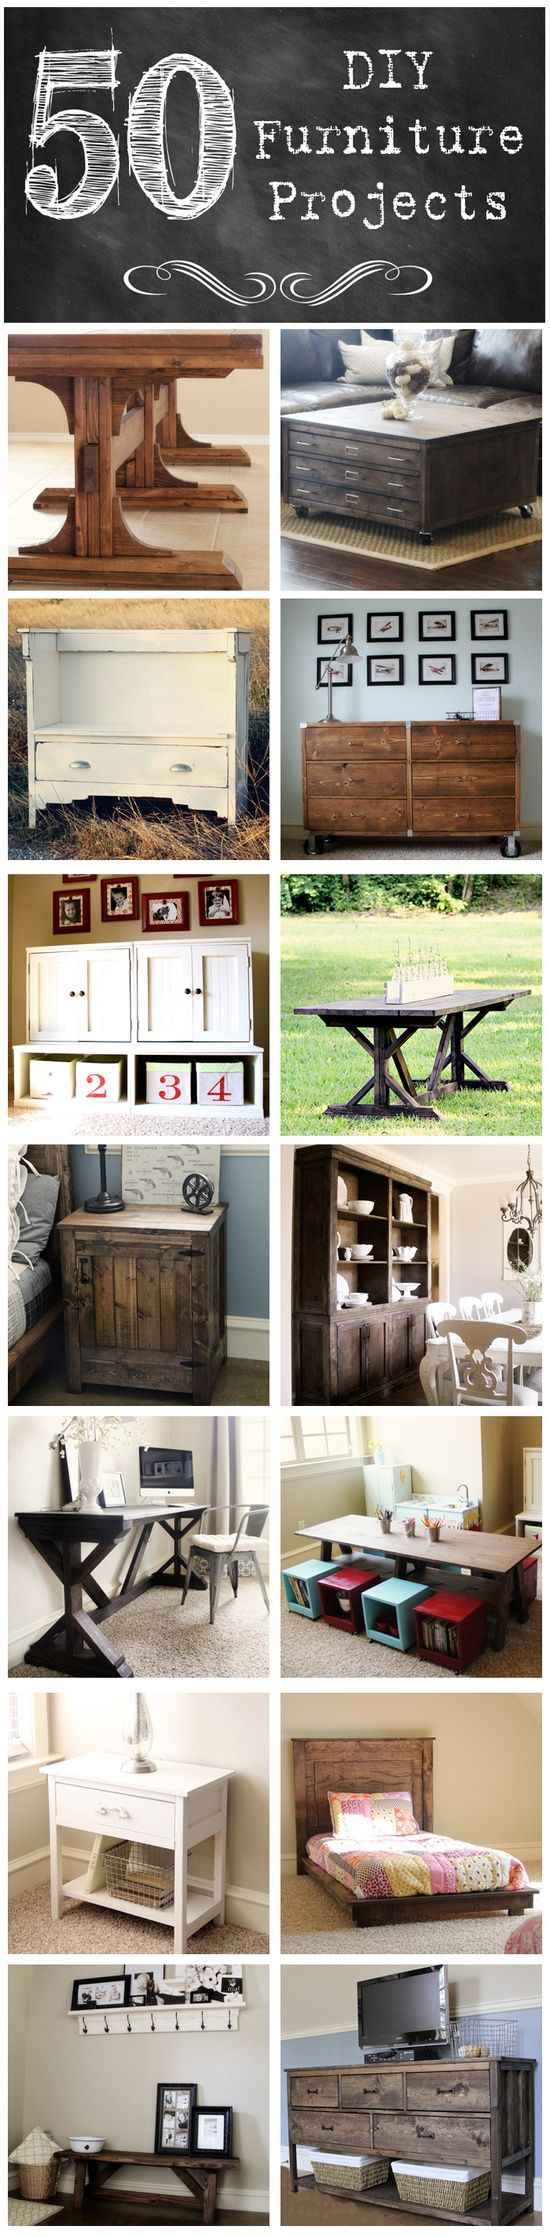 Info's : 50 home furniture projects #Home #DIY